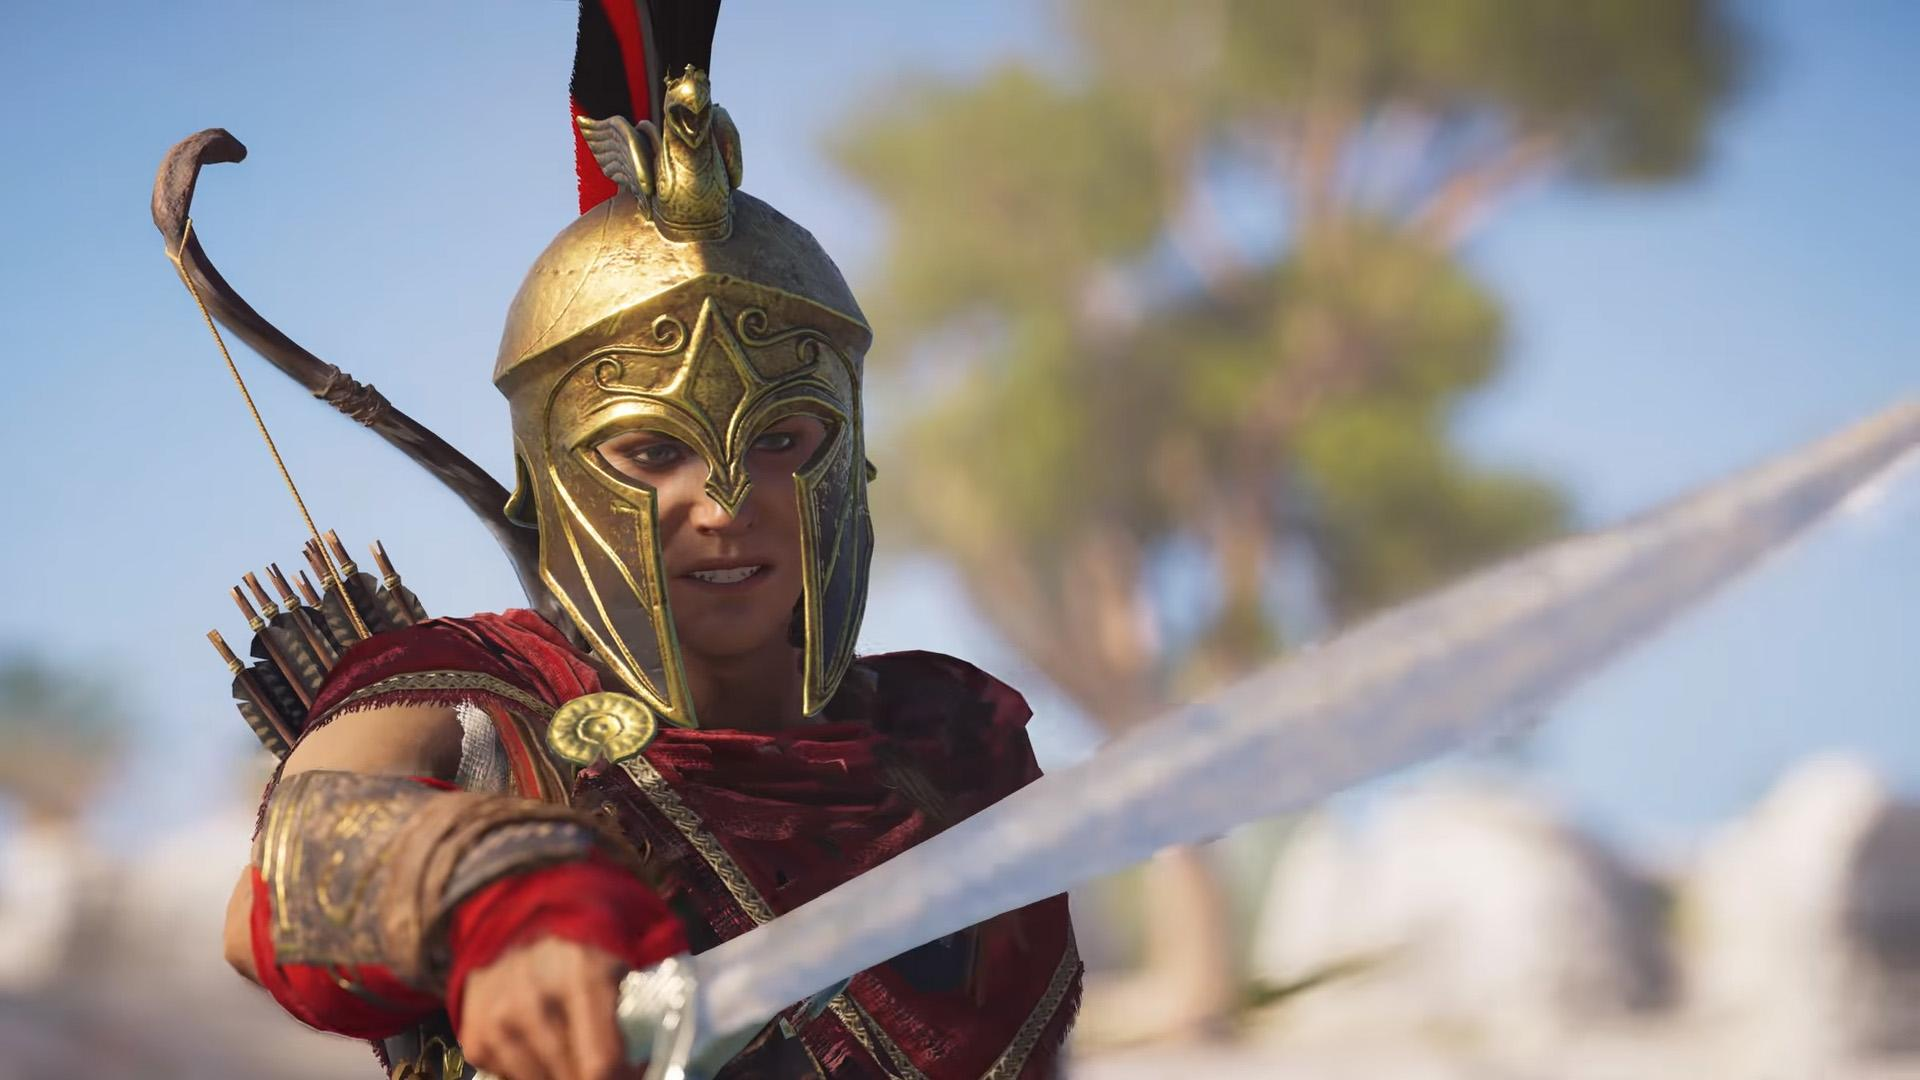 Assassin S Creed Odyssey Female Protagonist Is Canon Says Ubisoft